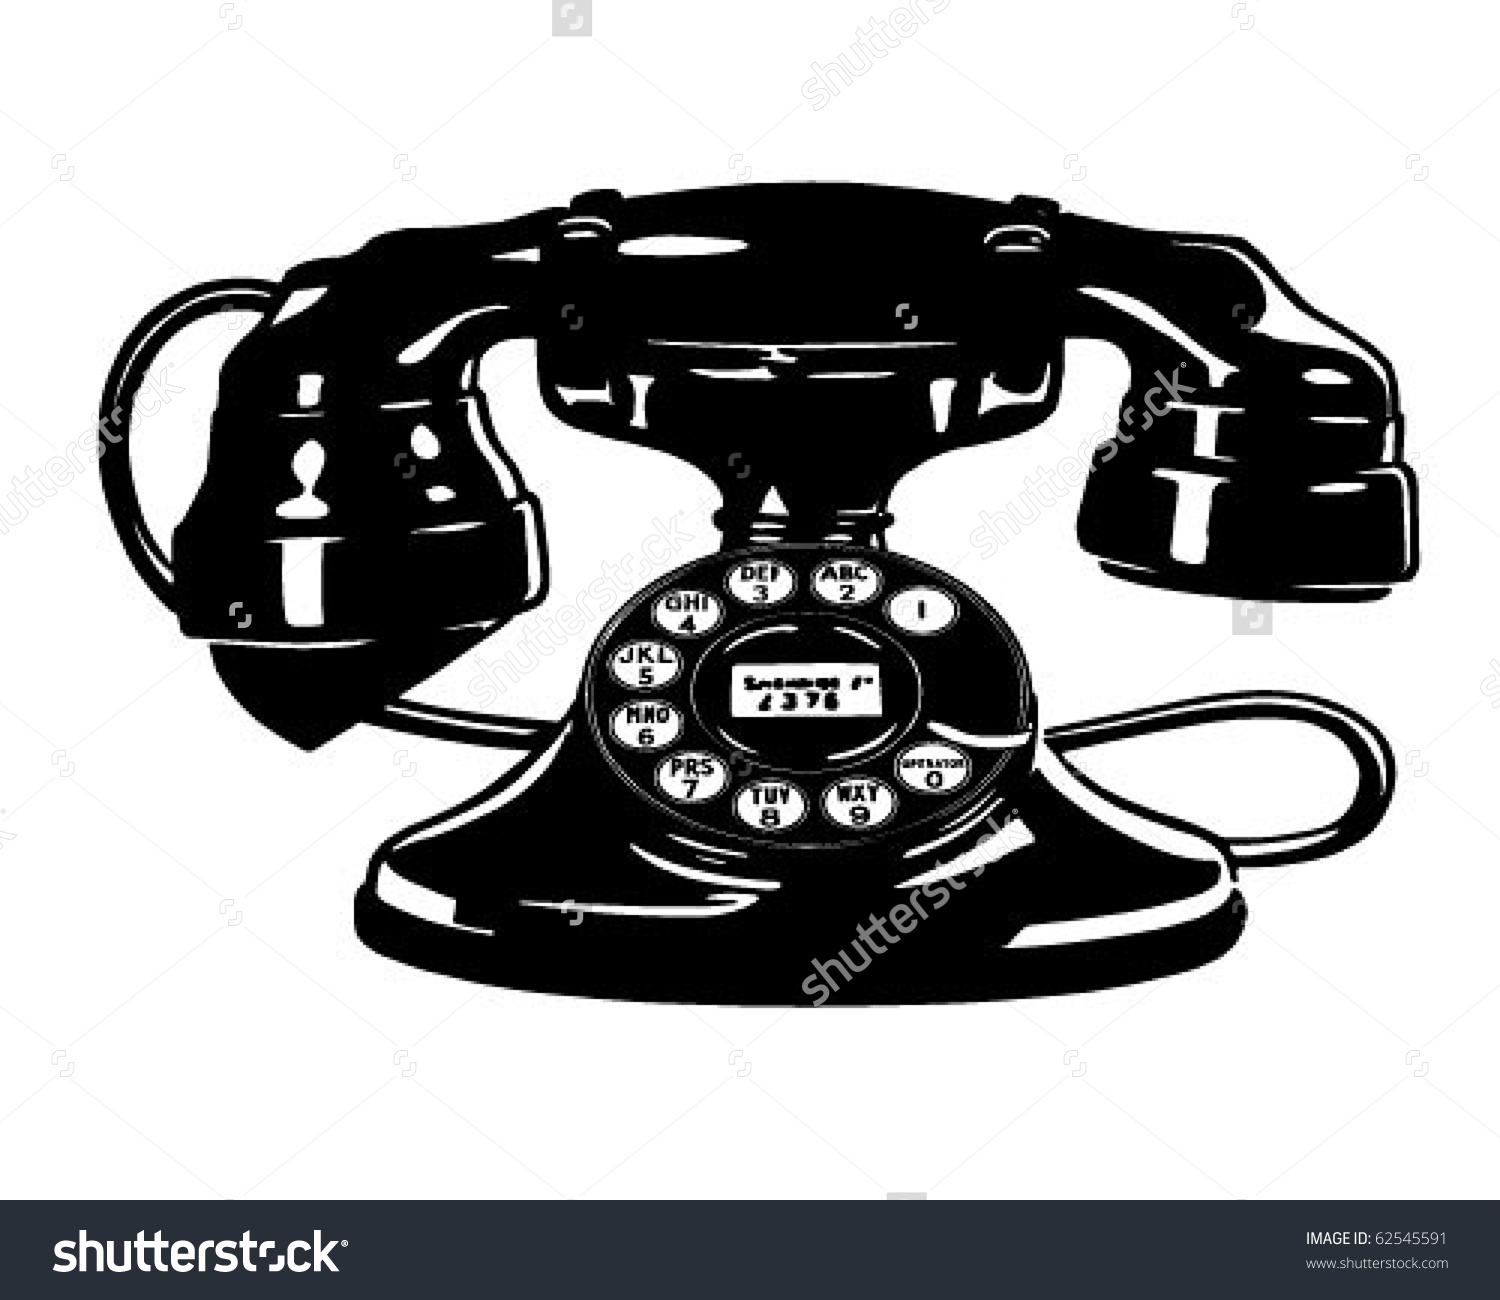 Telephone clipart vintage telephone Phone art clipart clip Free